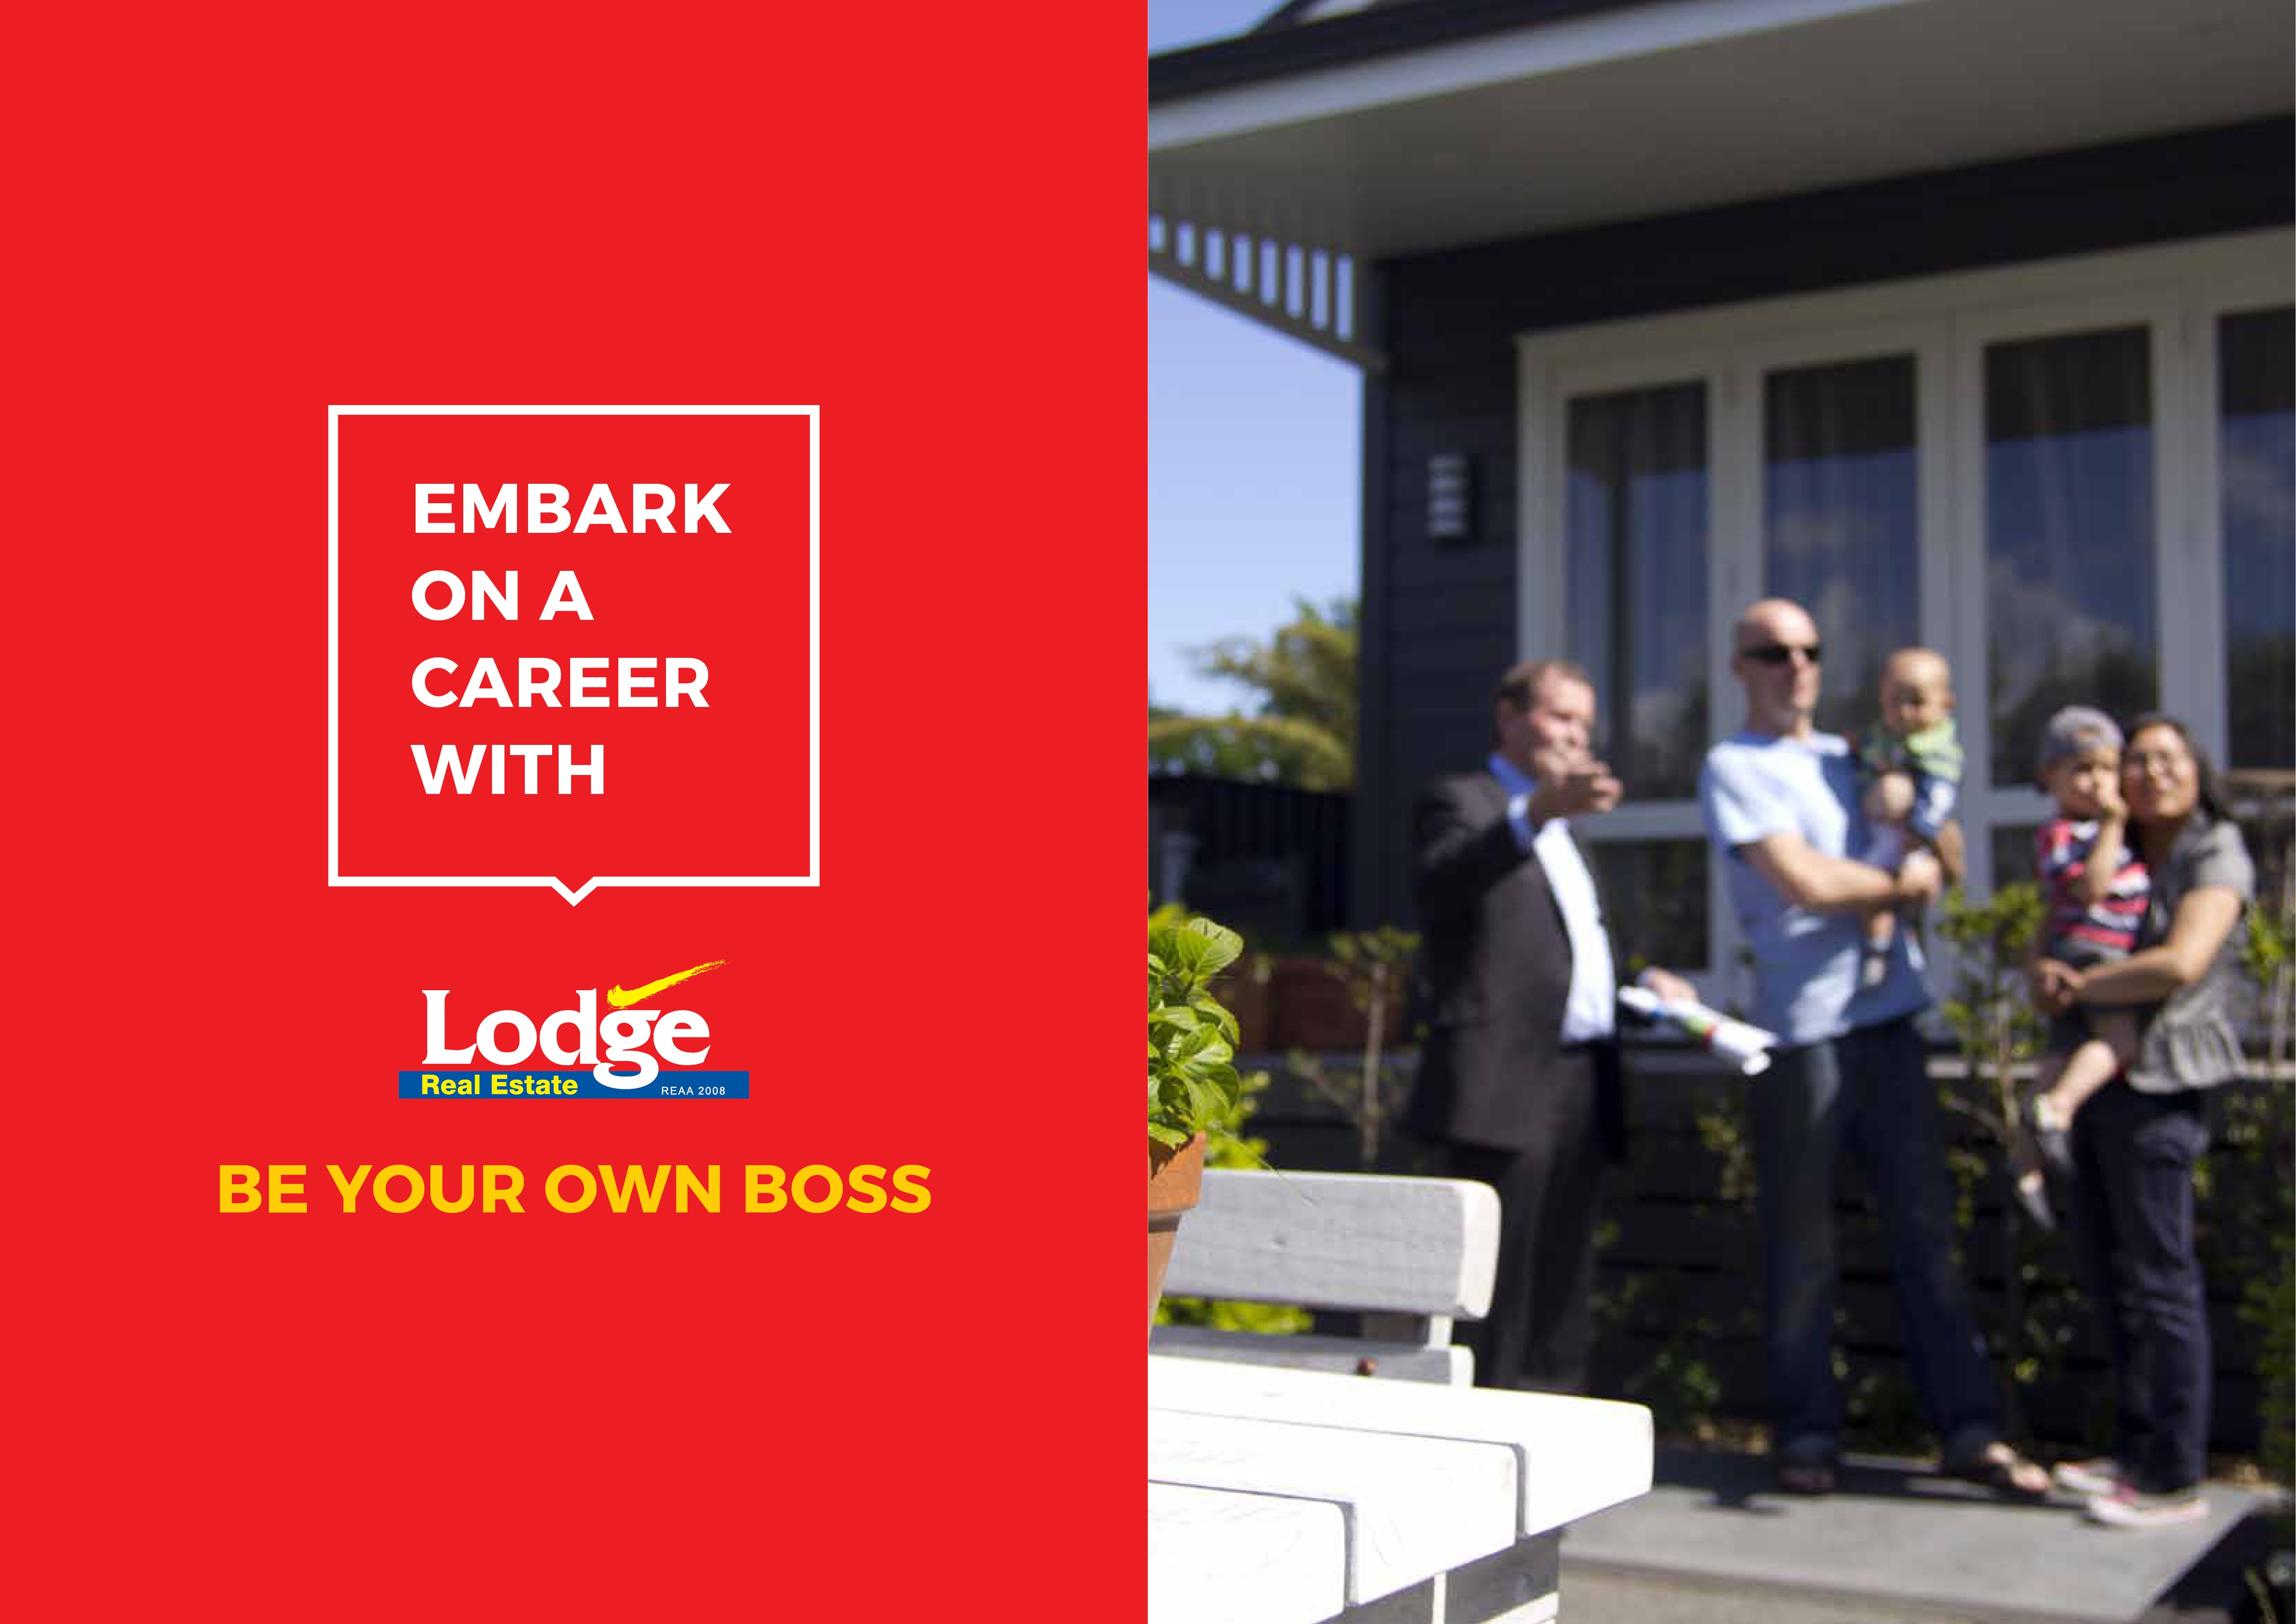 Embark On A Career With Lodge - Ebook for Hubspot.jpg